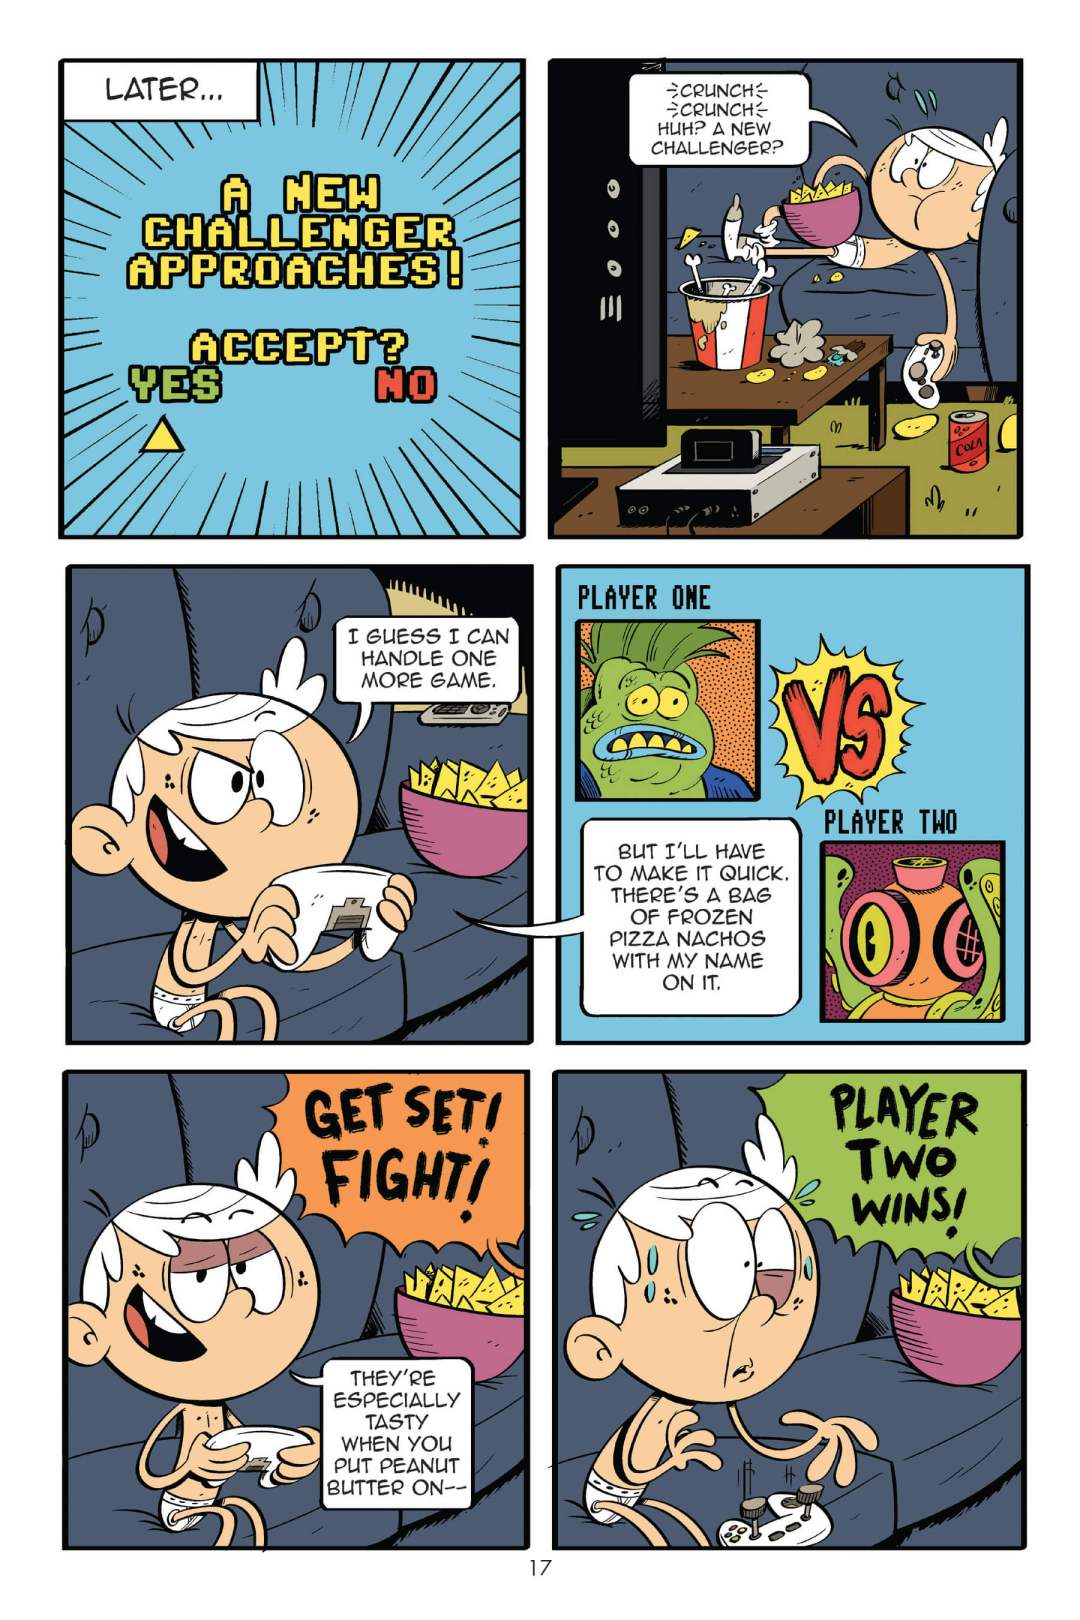 LOUDHOUSE#1ebook-18